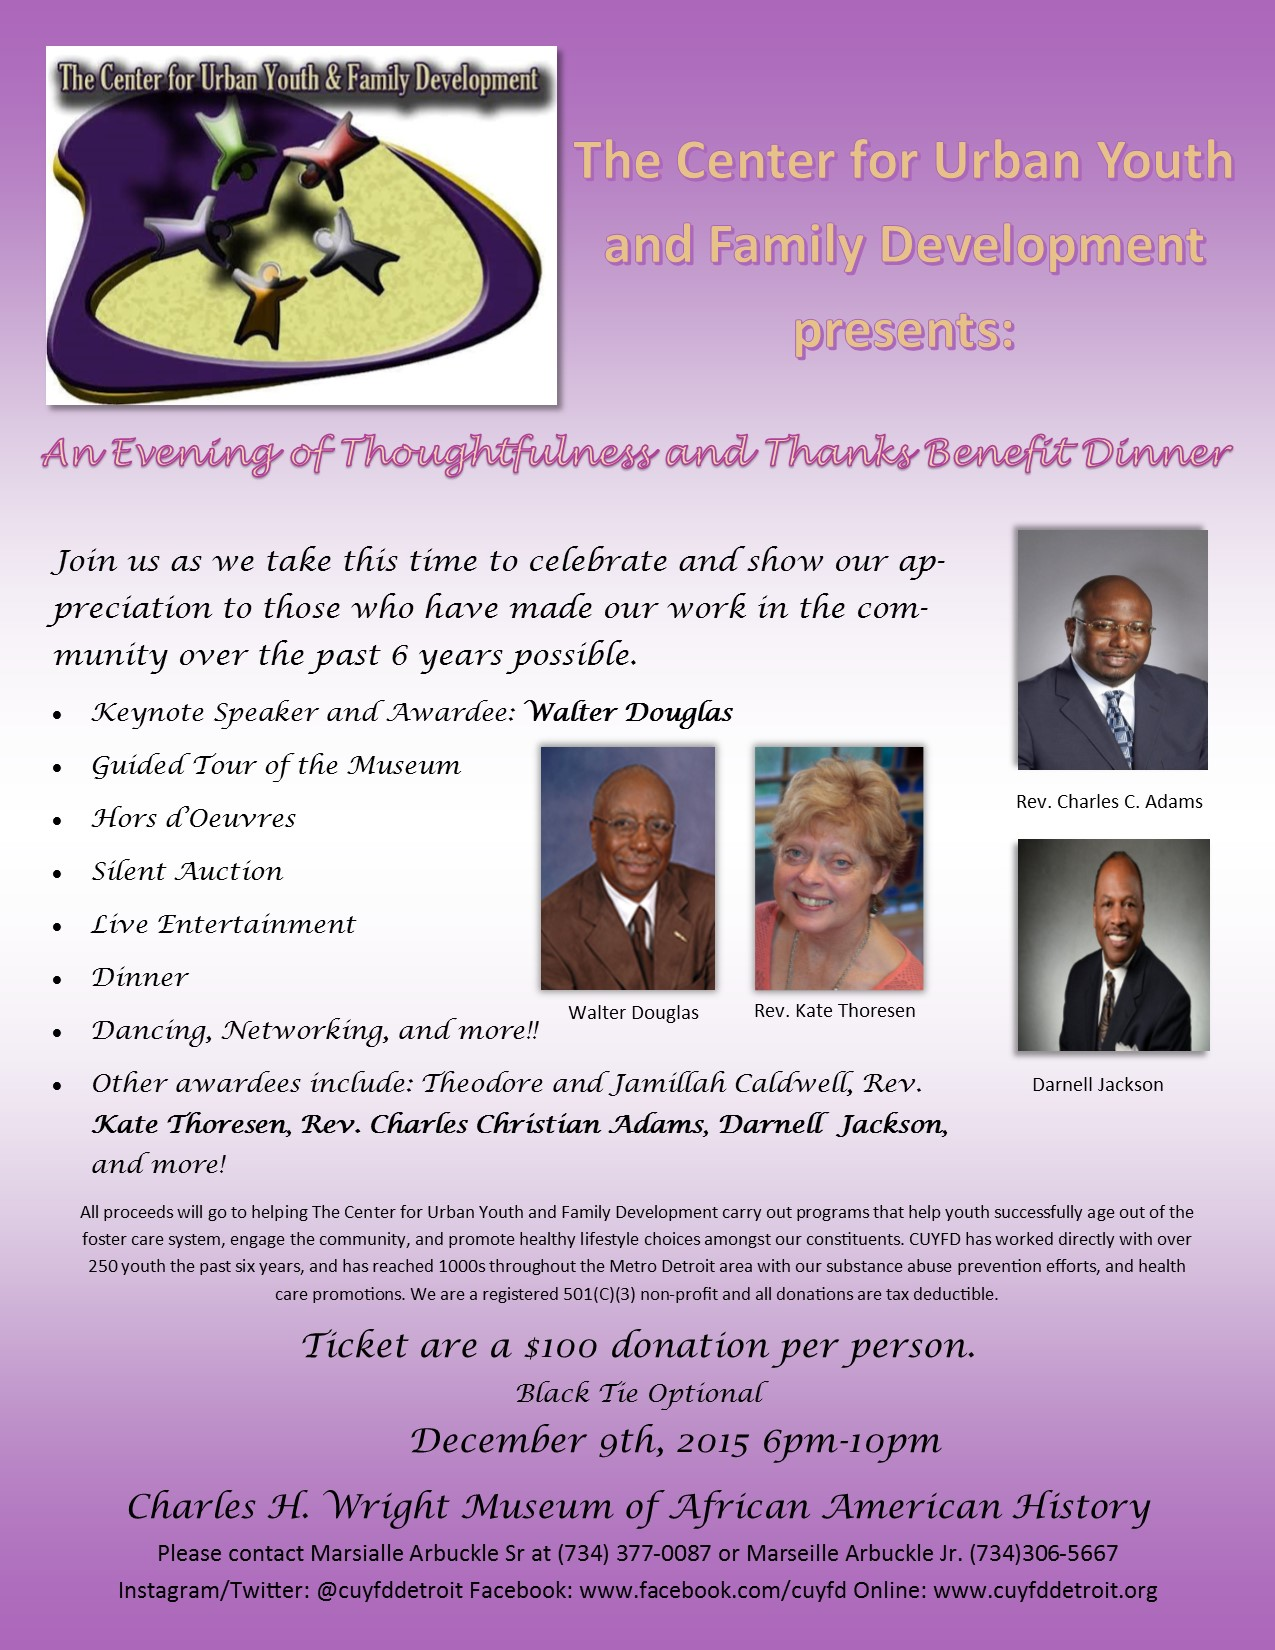 The Center for Urban Youth and Family Development is proud to present our first ever, Awards Ceremony and Fundraiser: An Evening of Thoughtfulness and Thanks. Join us as we take this time to celebrate and show our appreciation to those who have made our work in the community of the past 6 years possible. Our Keynote Speaker will be Mr. Walter Douglas. Mr. Douglas is an entrepreneur, philanthropist, and dedicated friend of The Center for Urban Youth and Family Development. We are proud to honor him with our Character Award for all that he has done for us, and the community at large. The evening will include a guided tour of the museum, live entertainment, hors d'Ovoures, dinner, dancing, a silent auction, networking and more!